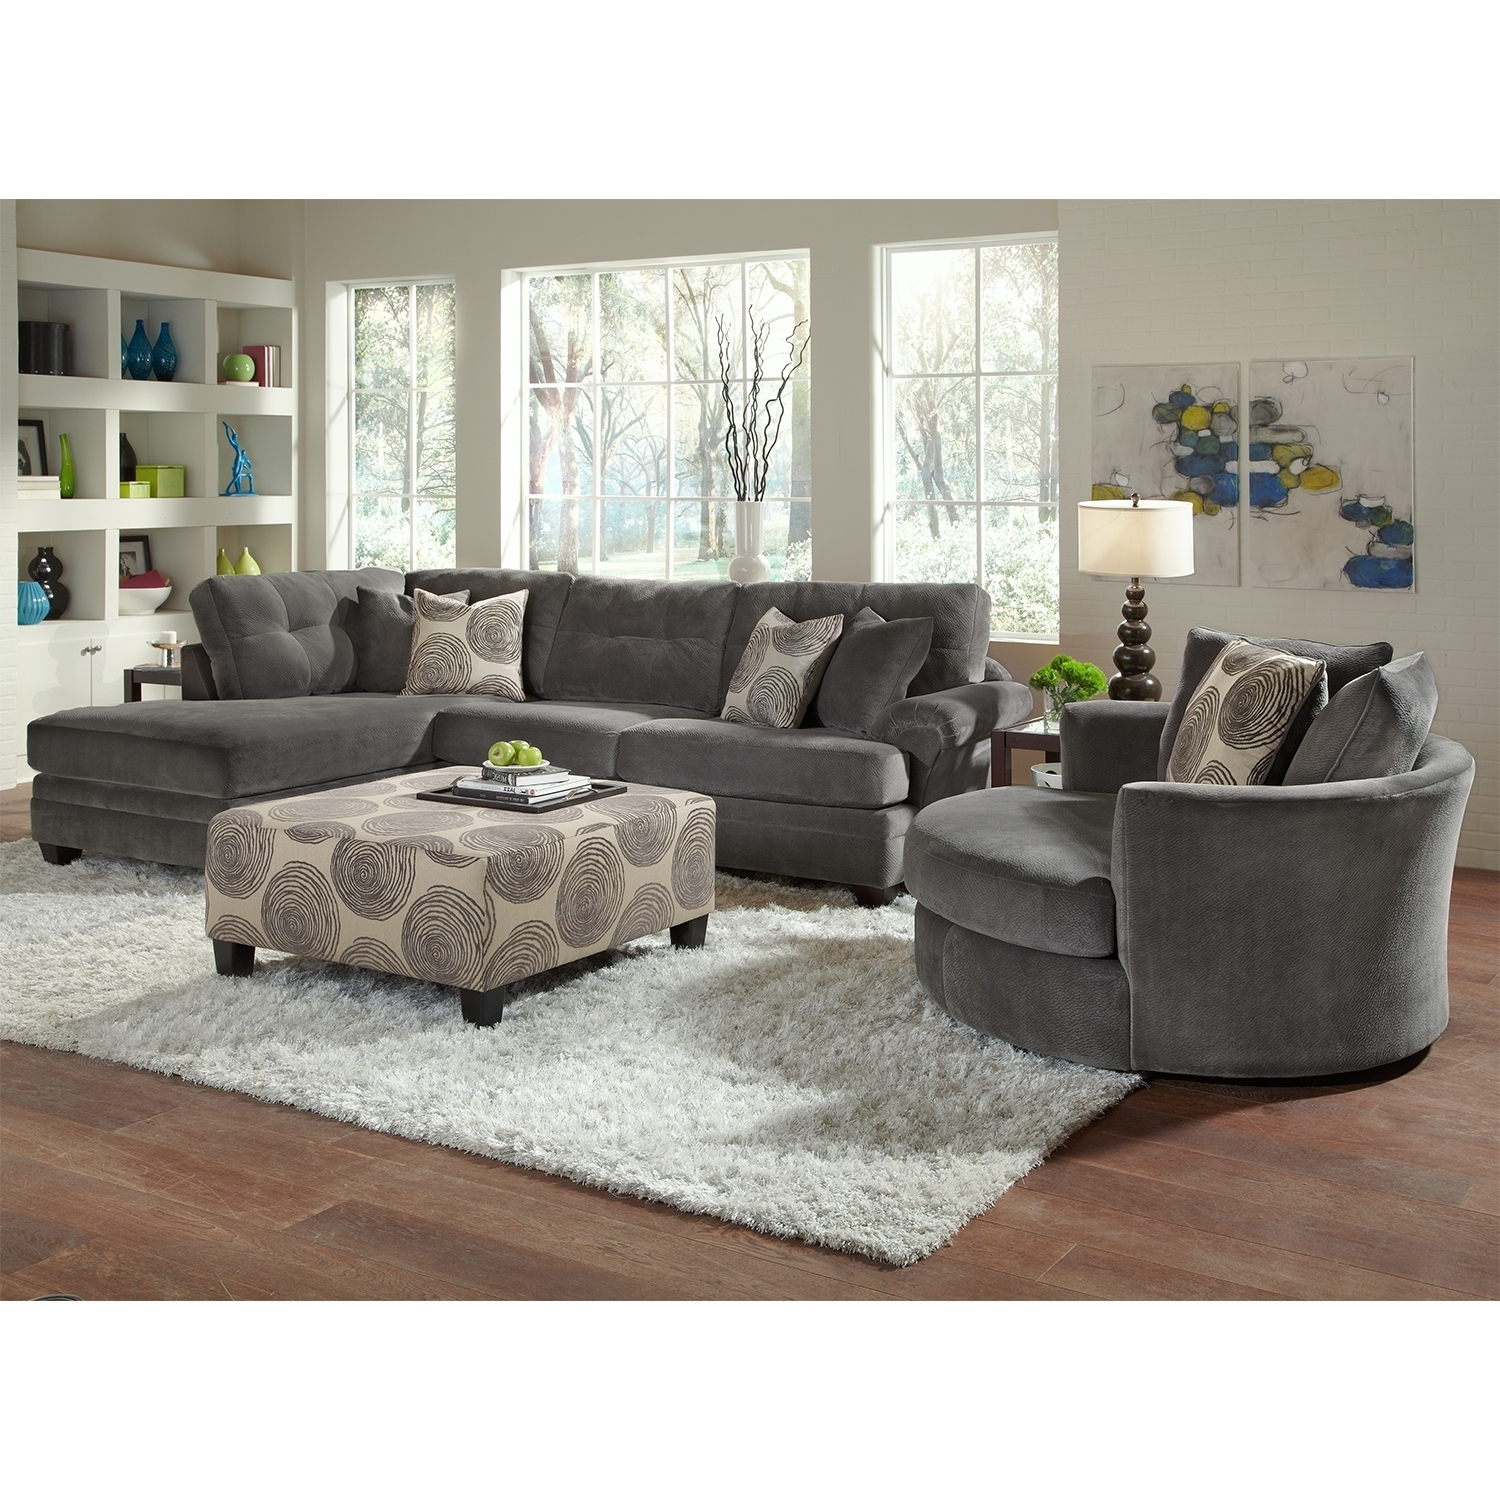 Widely Used Rooms To Go Sectional Sofas With Regard To Rooms To Go  Sectional Sofas Medium